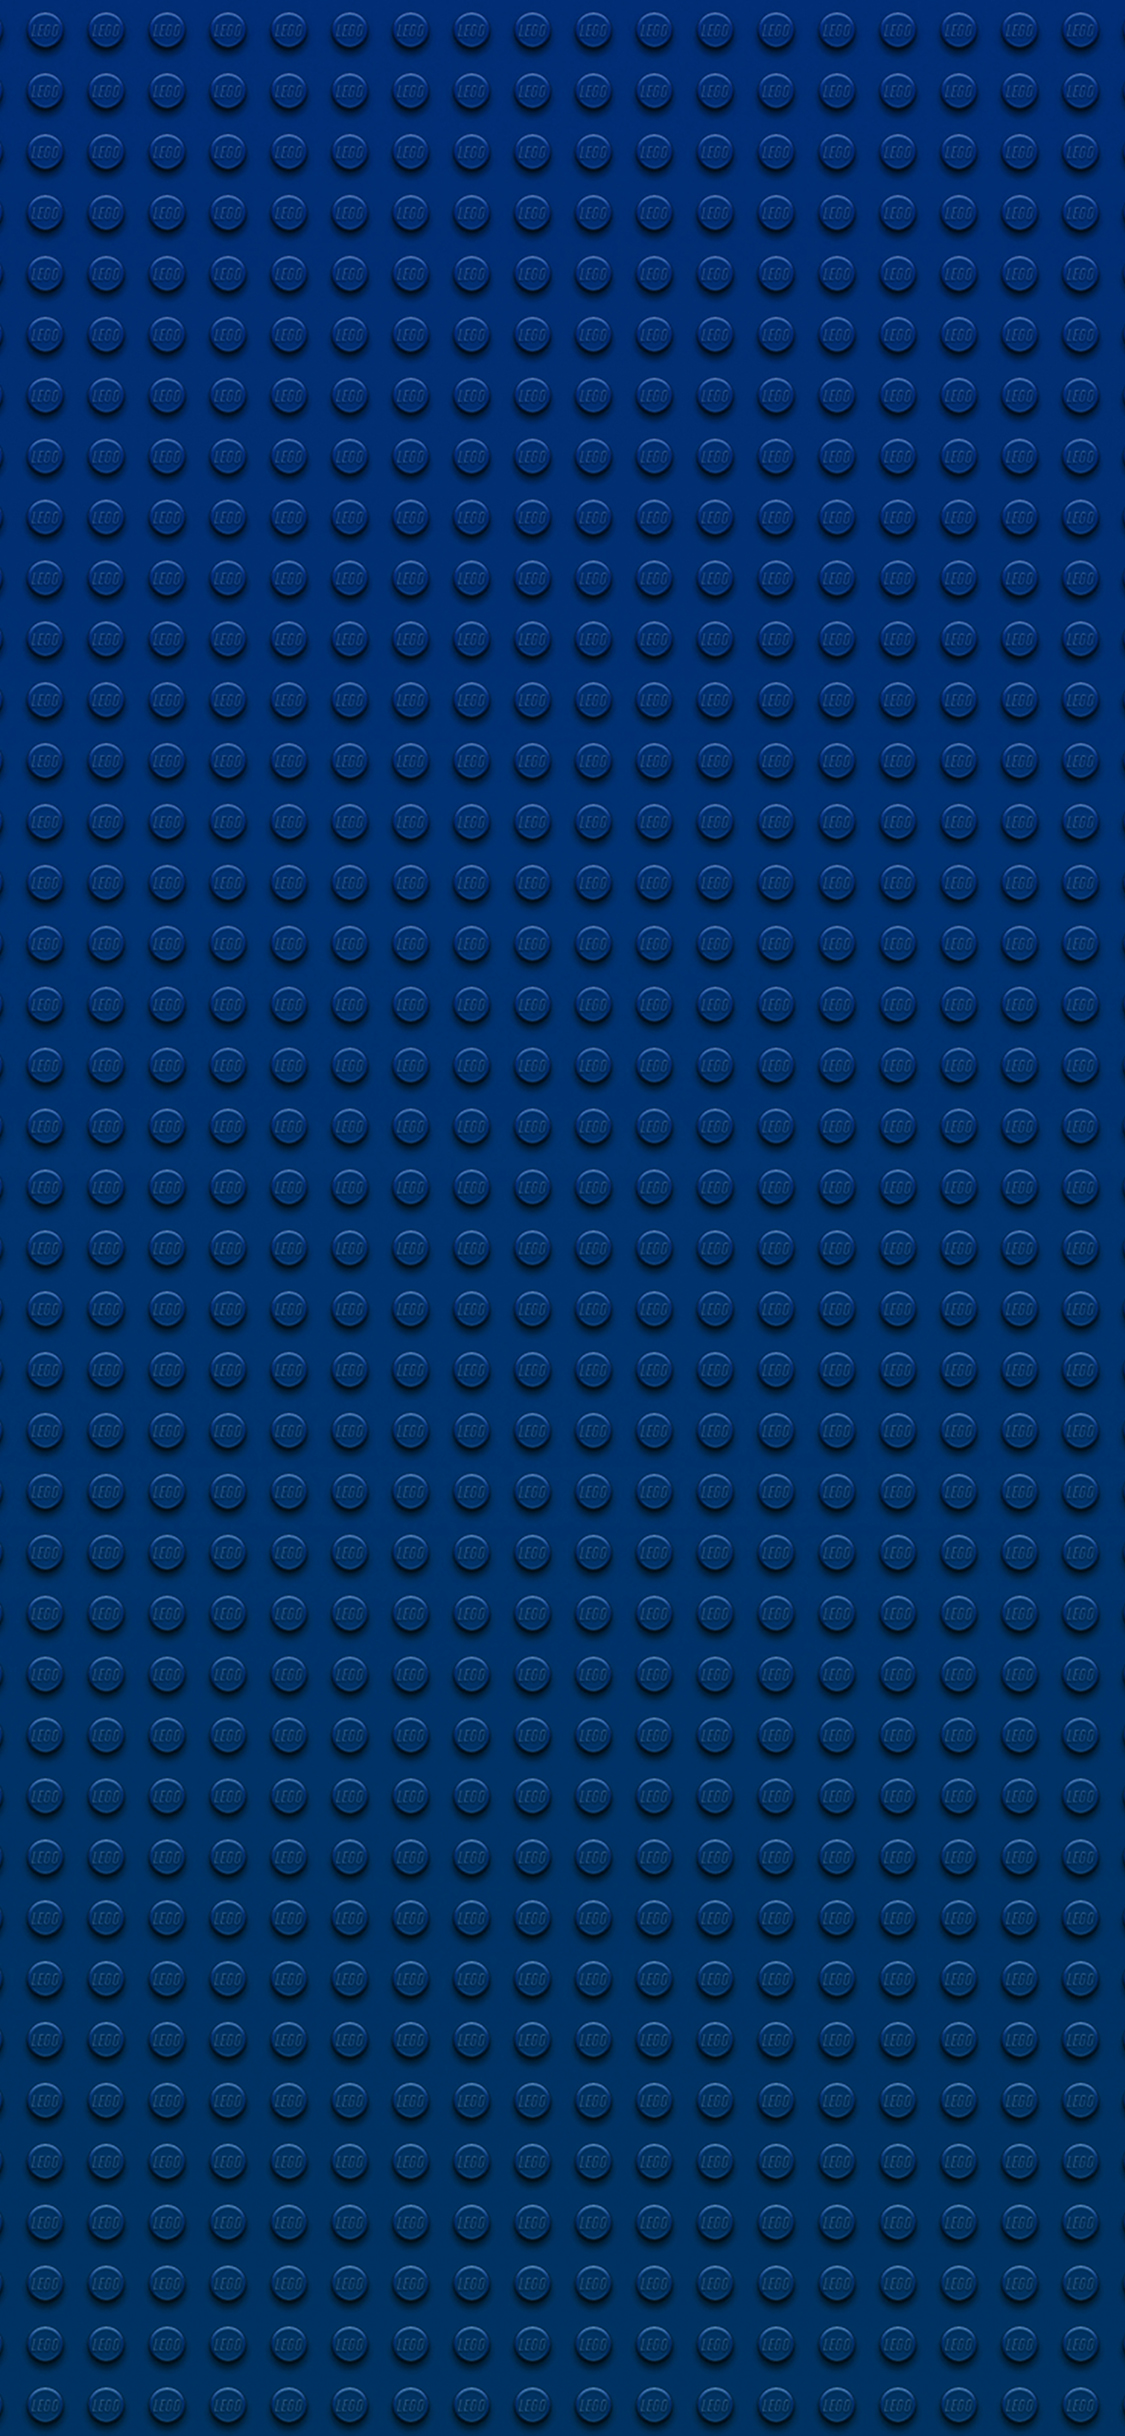 iPhoneXpapers.com-Apple-iPhone-wallpaper-vf34-lego-toy-dark-blue-block-pattern